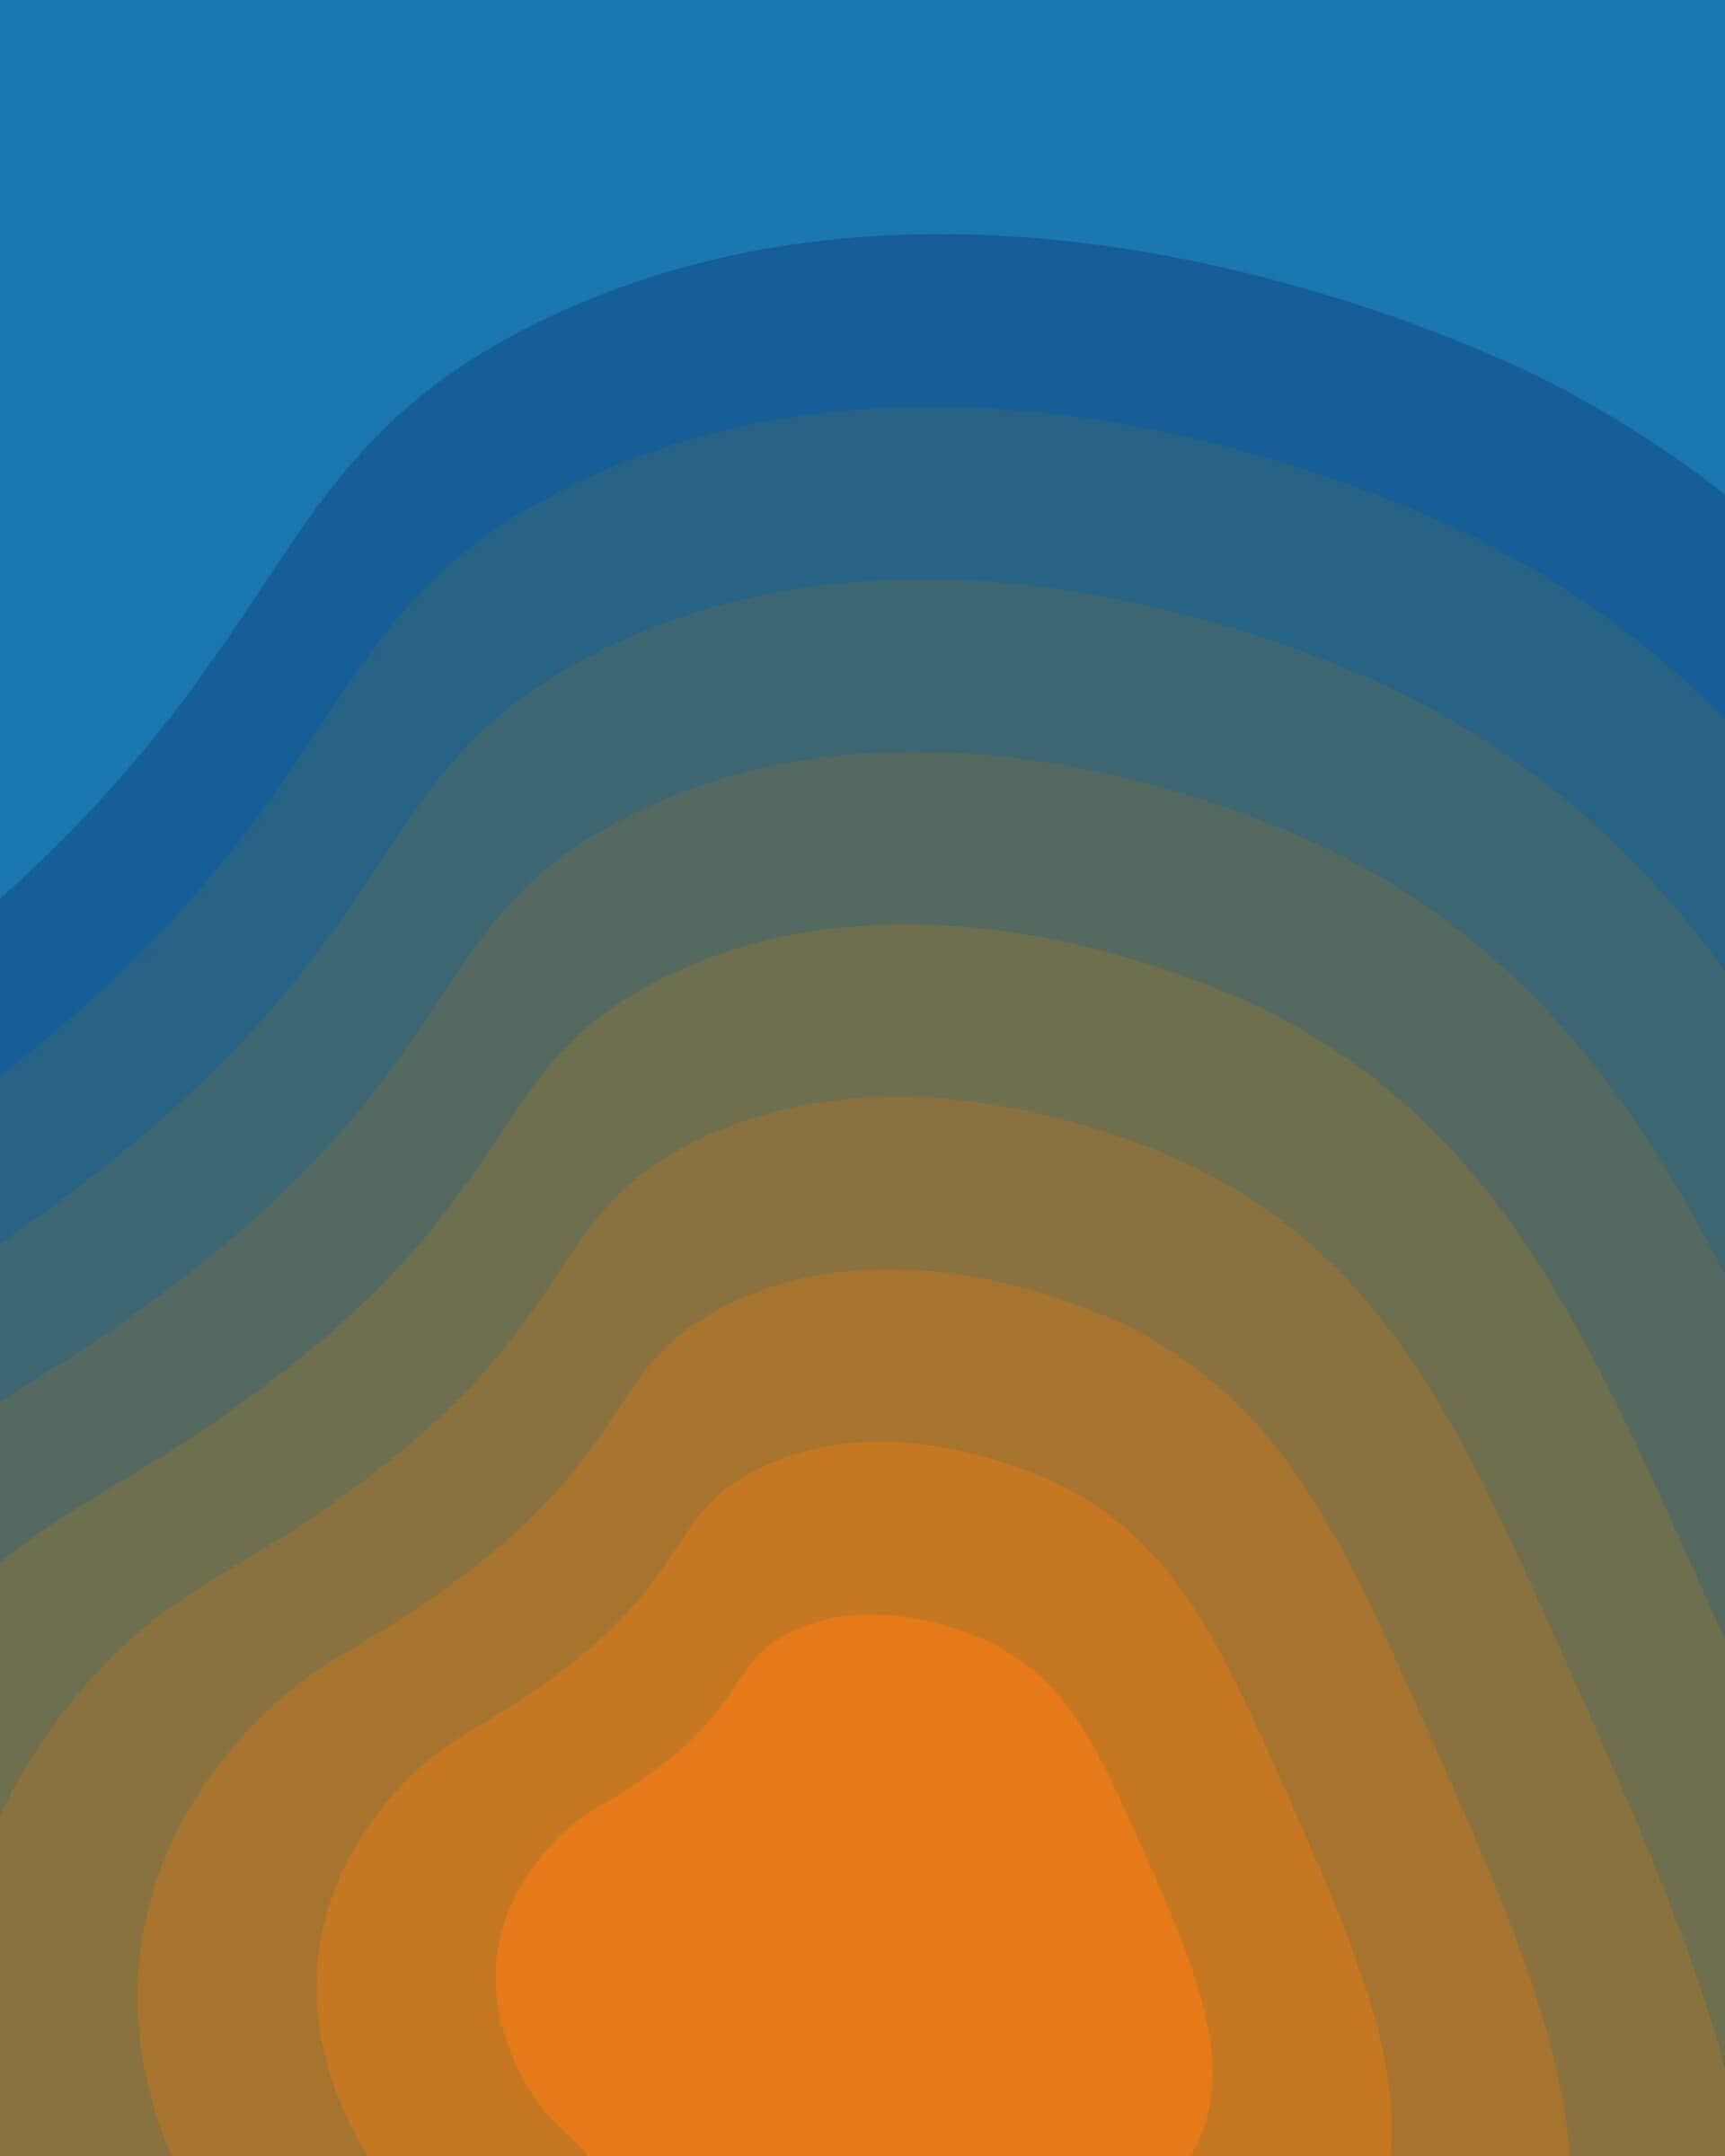 Yosiento branded orange-to-blue organic background